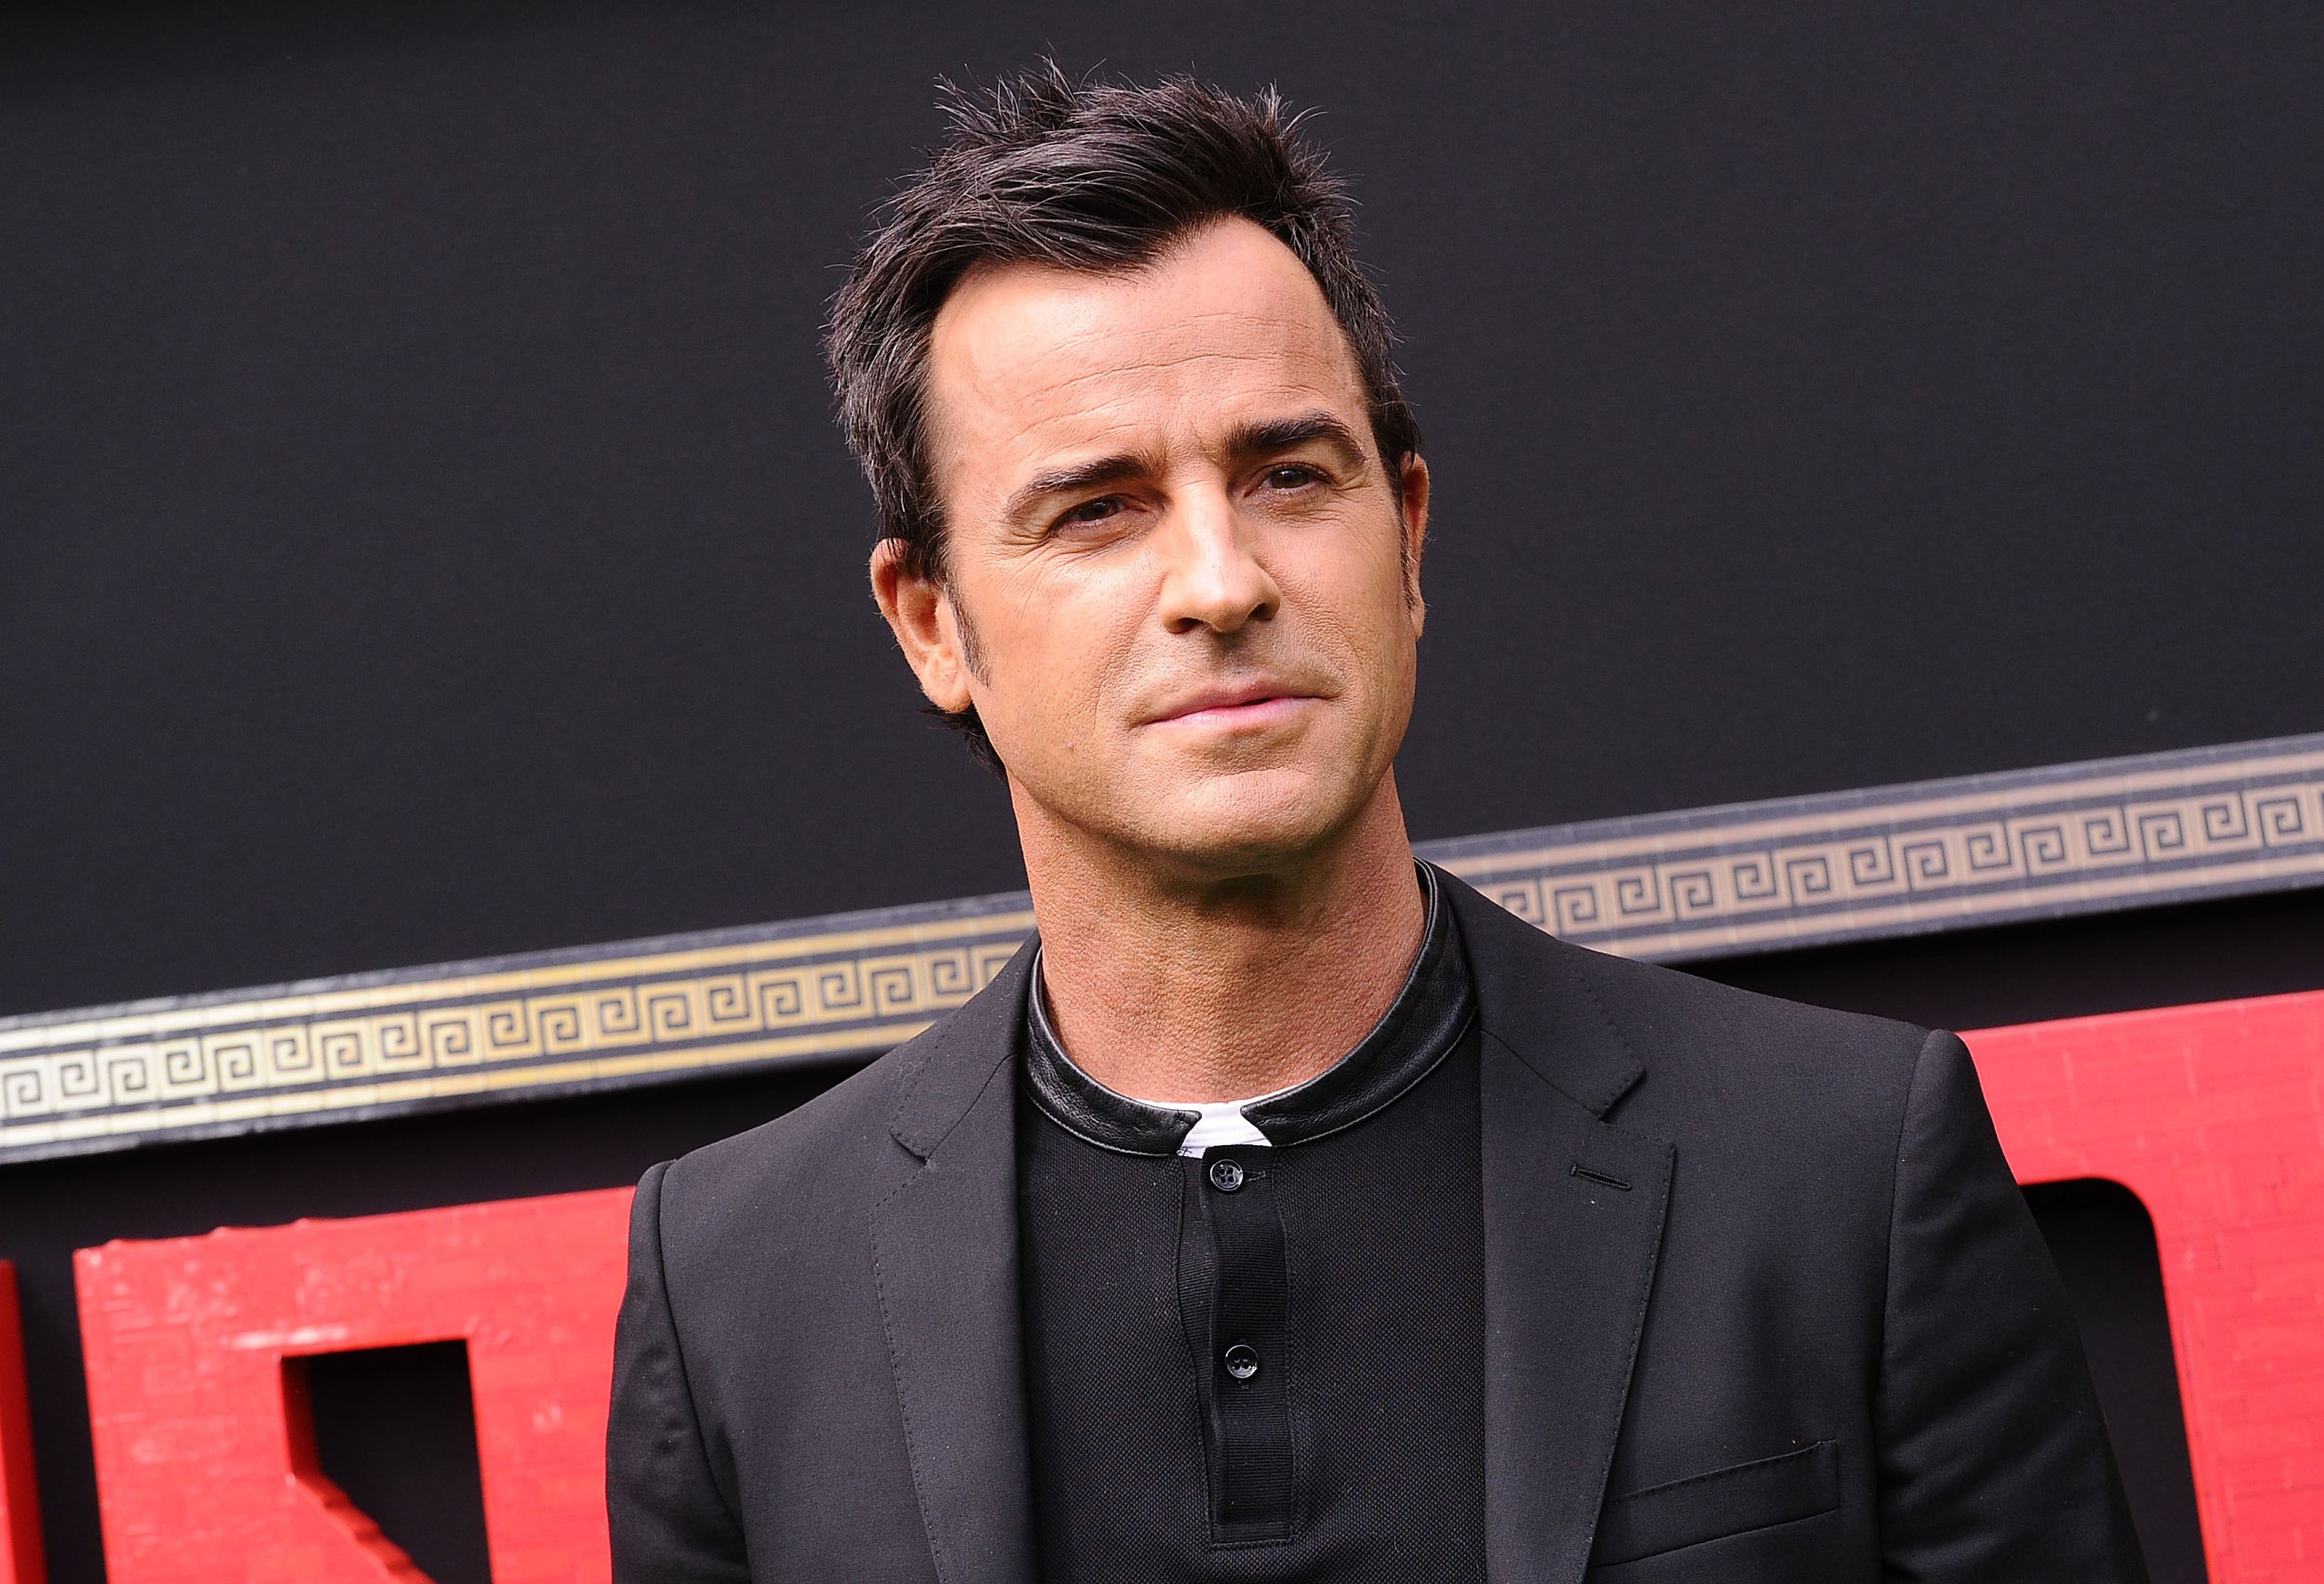 """WESTWOOD, CA - SEPTEMBER 16: Actor Justin Theroux attends the premiere of """"The LEGO Ninjago Movie"""" at Regency Village Theatre on September 16, 2017 in Westwood, California. (Photo by Jason LaVeris/FilmMagic)"""